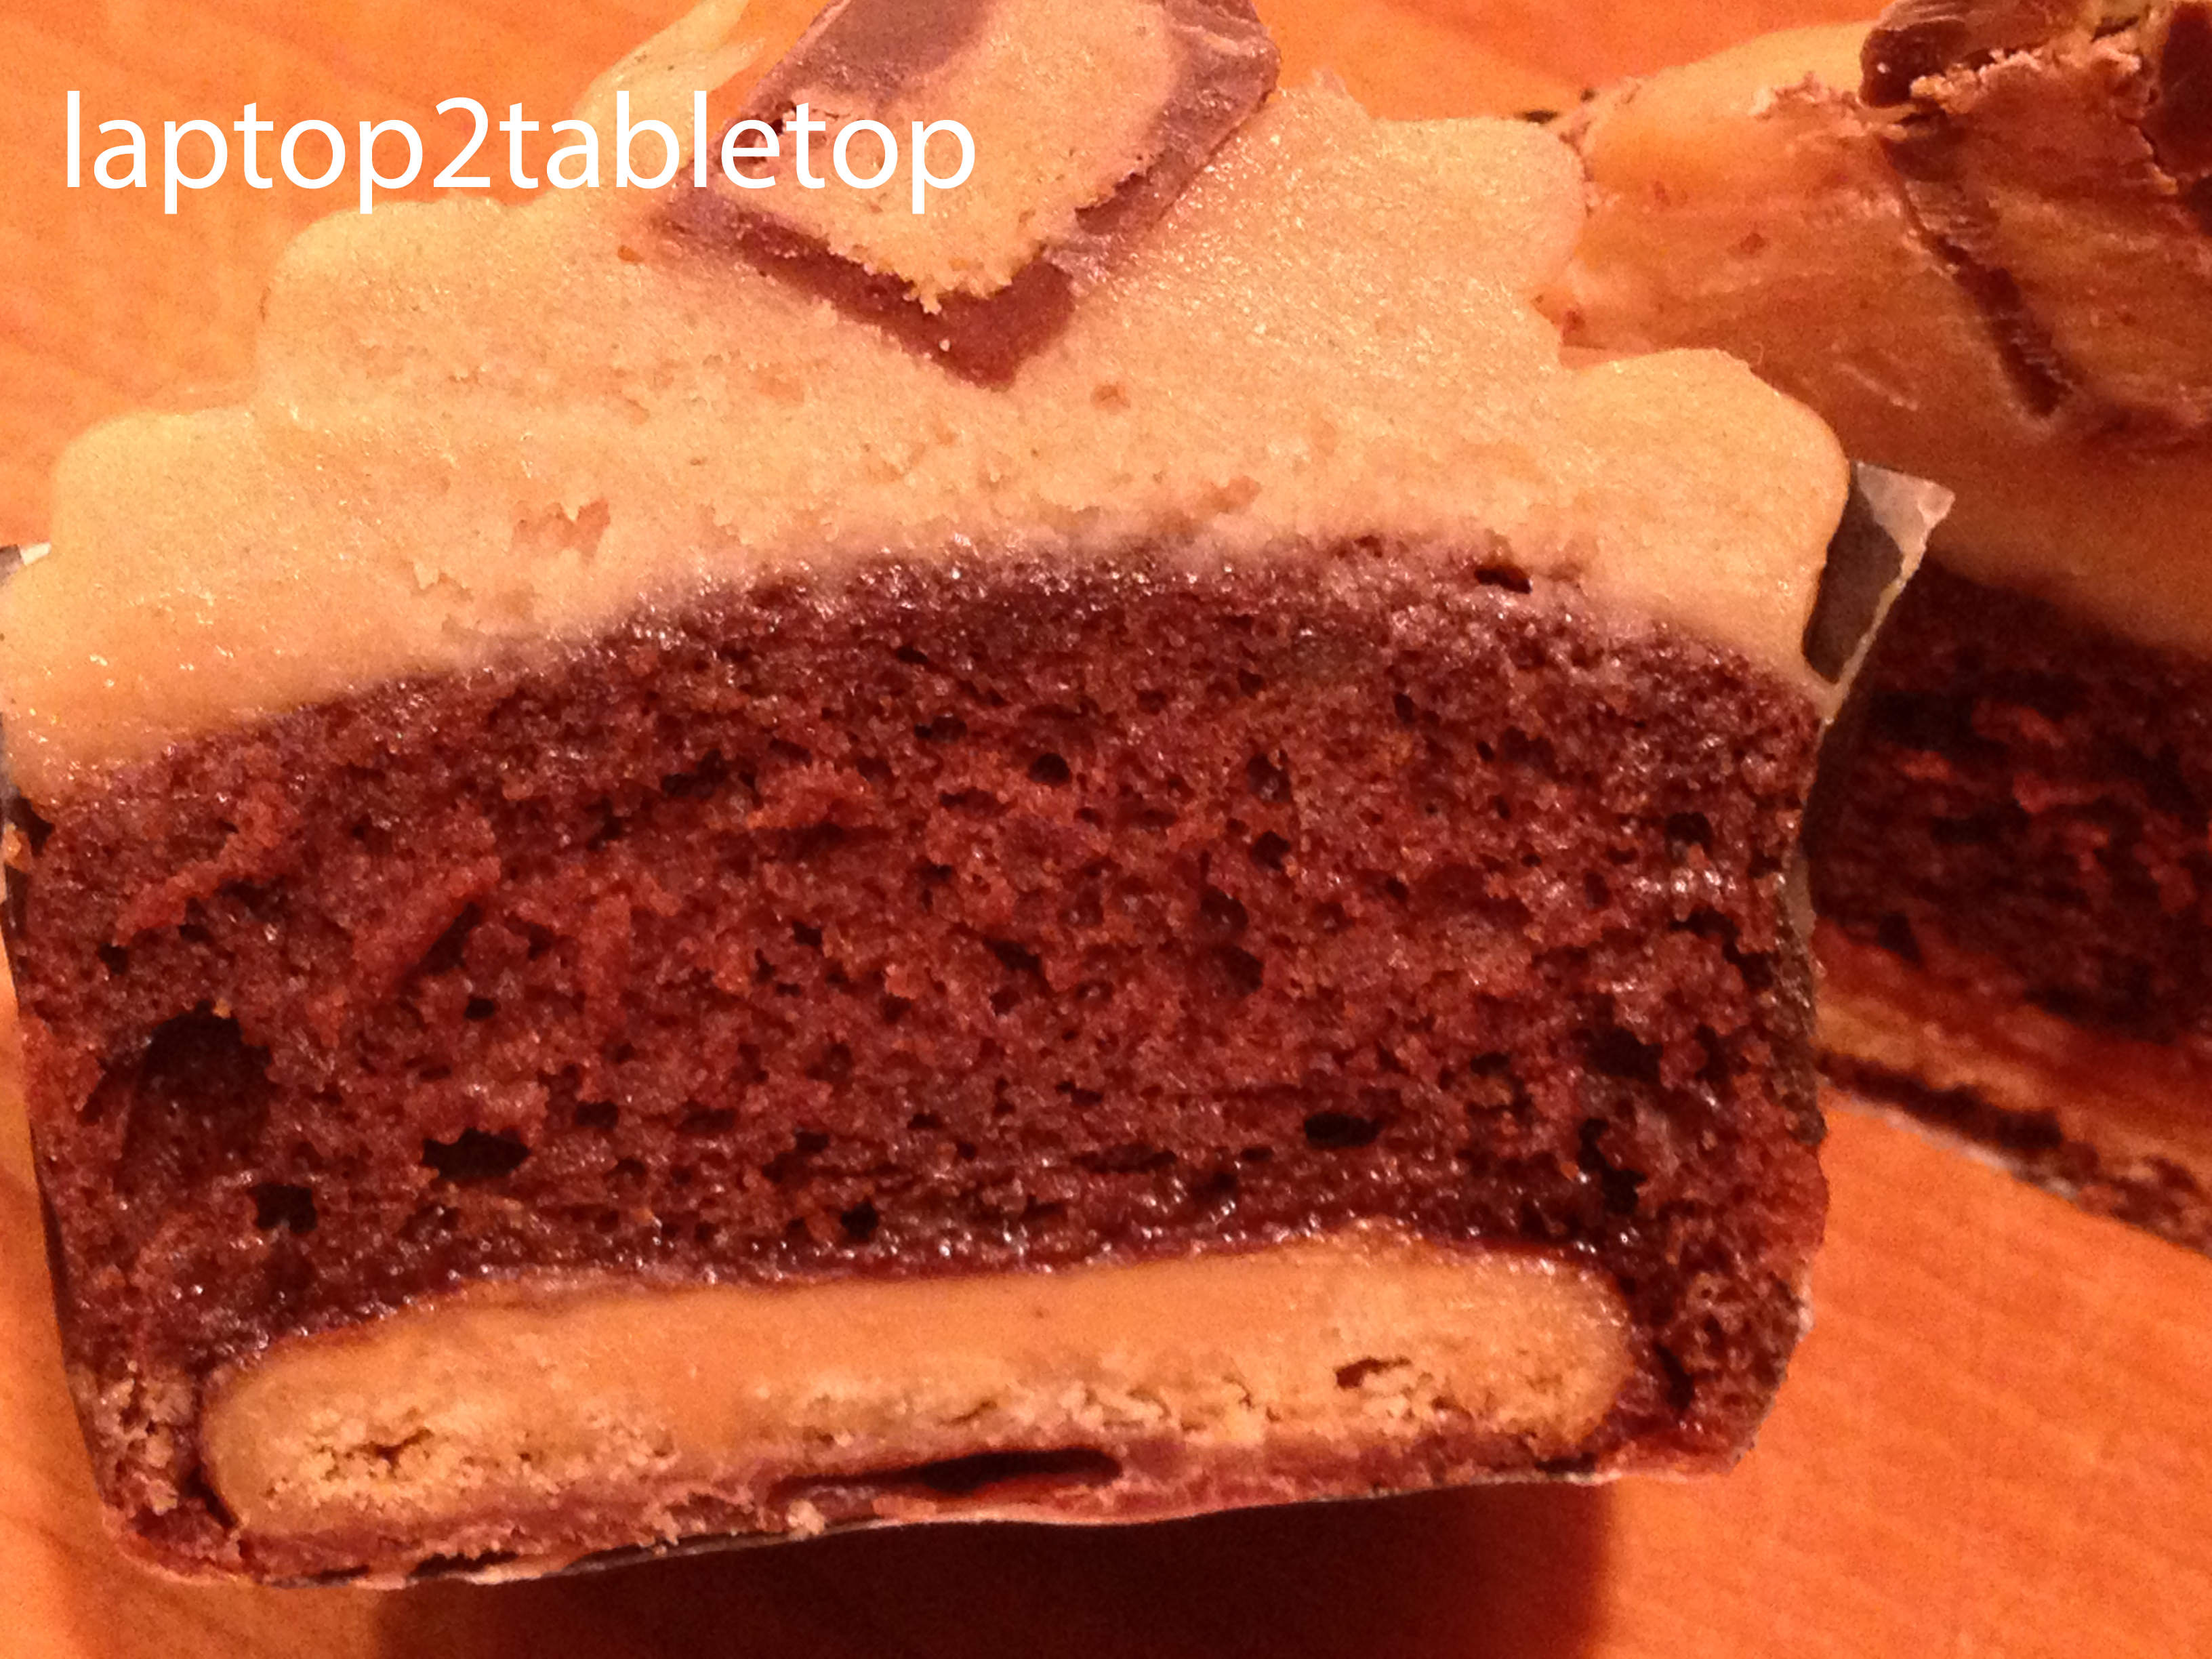 Tagalong Cupcakes | From Laptop to Tabletop